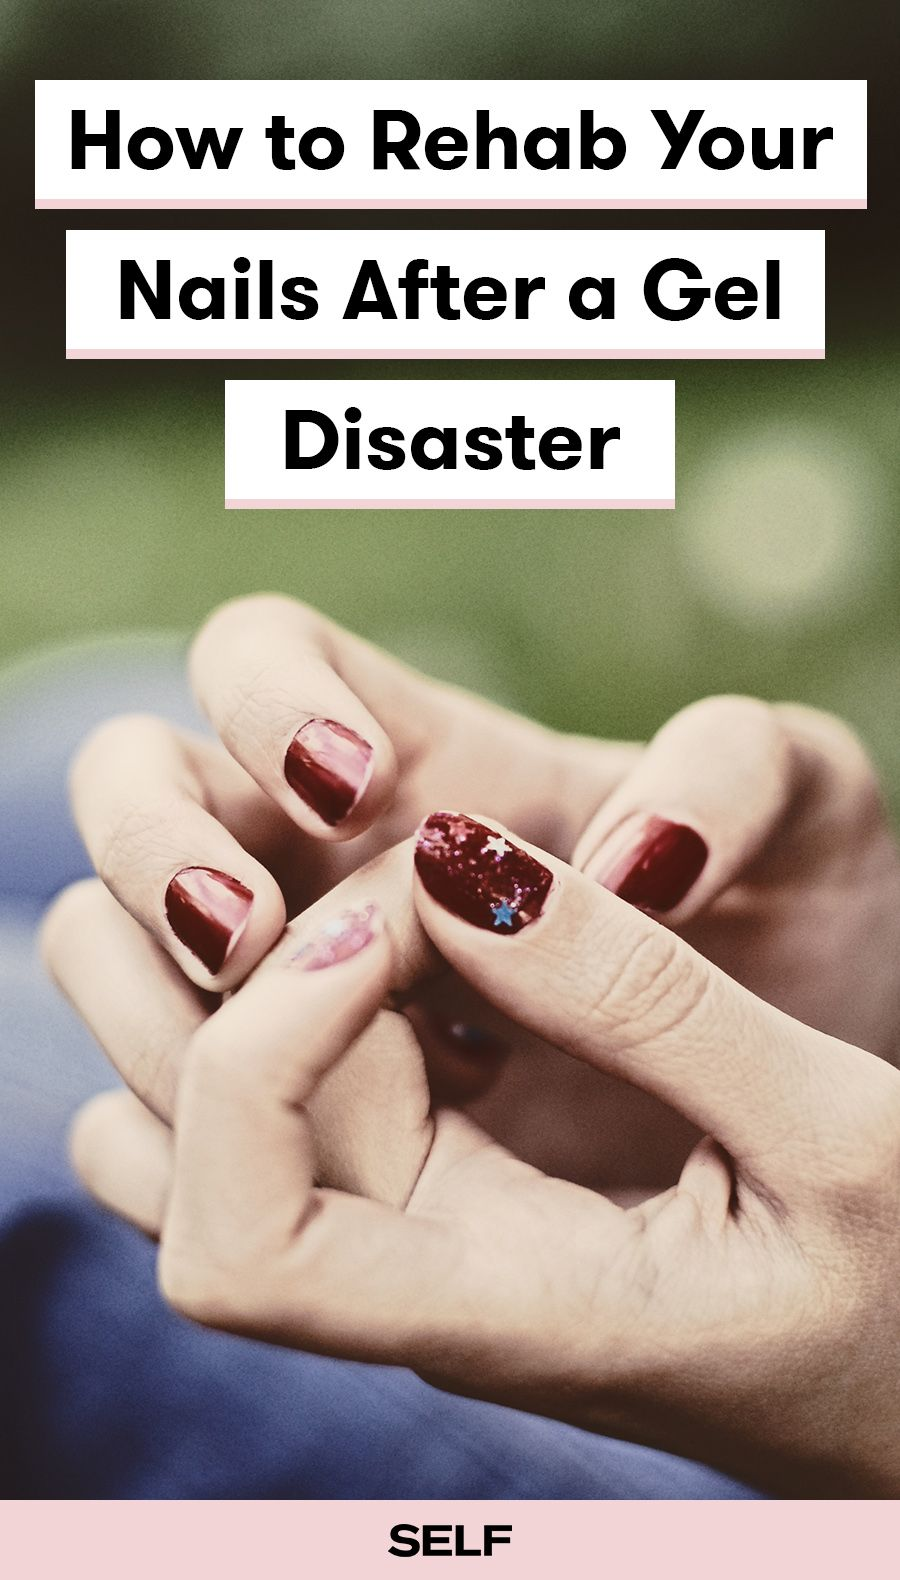 How To Rehab Your Nails After A Gel Disaster | Damaged nails, Make ...